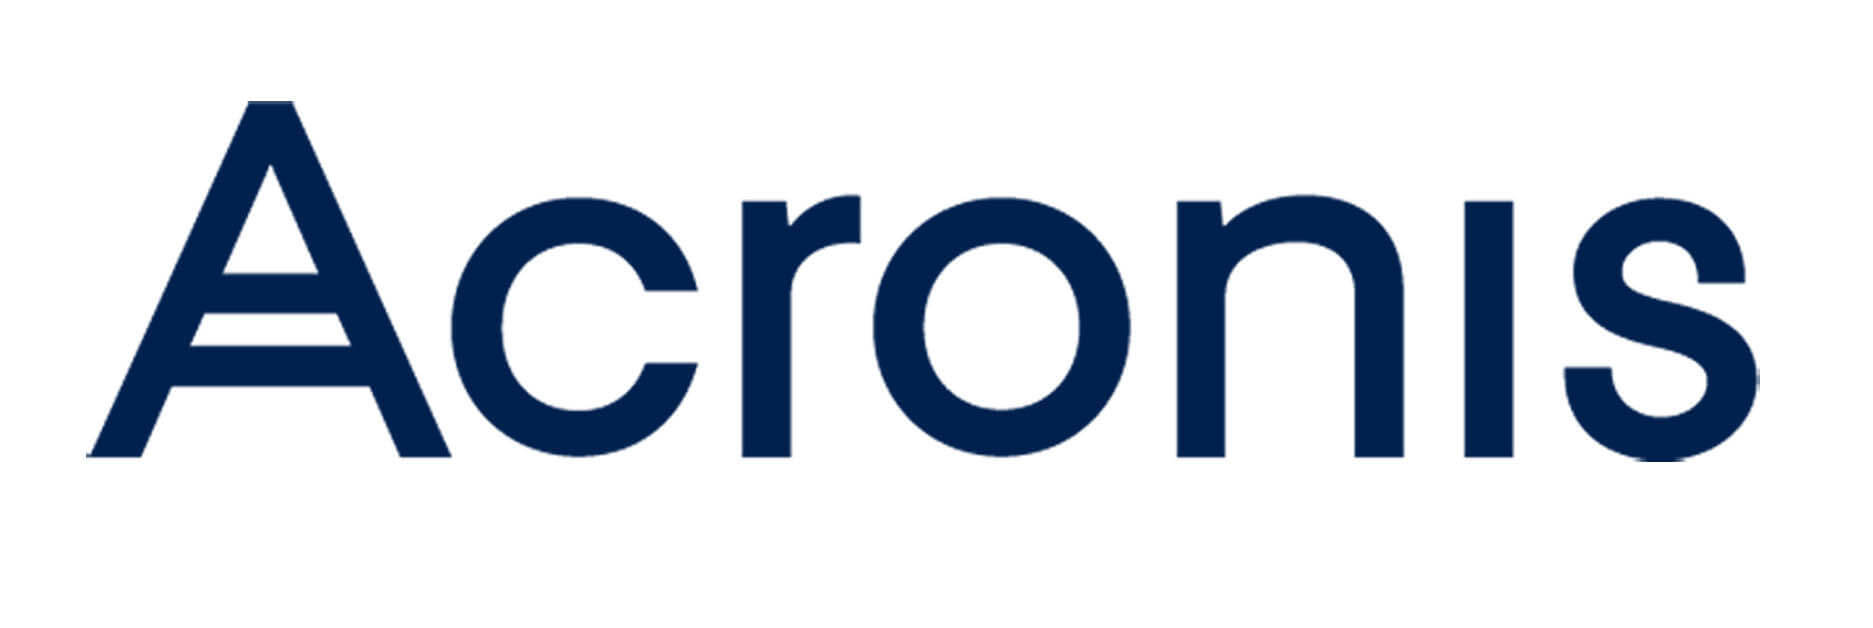 Acronis International GmbH